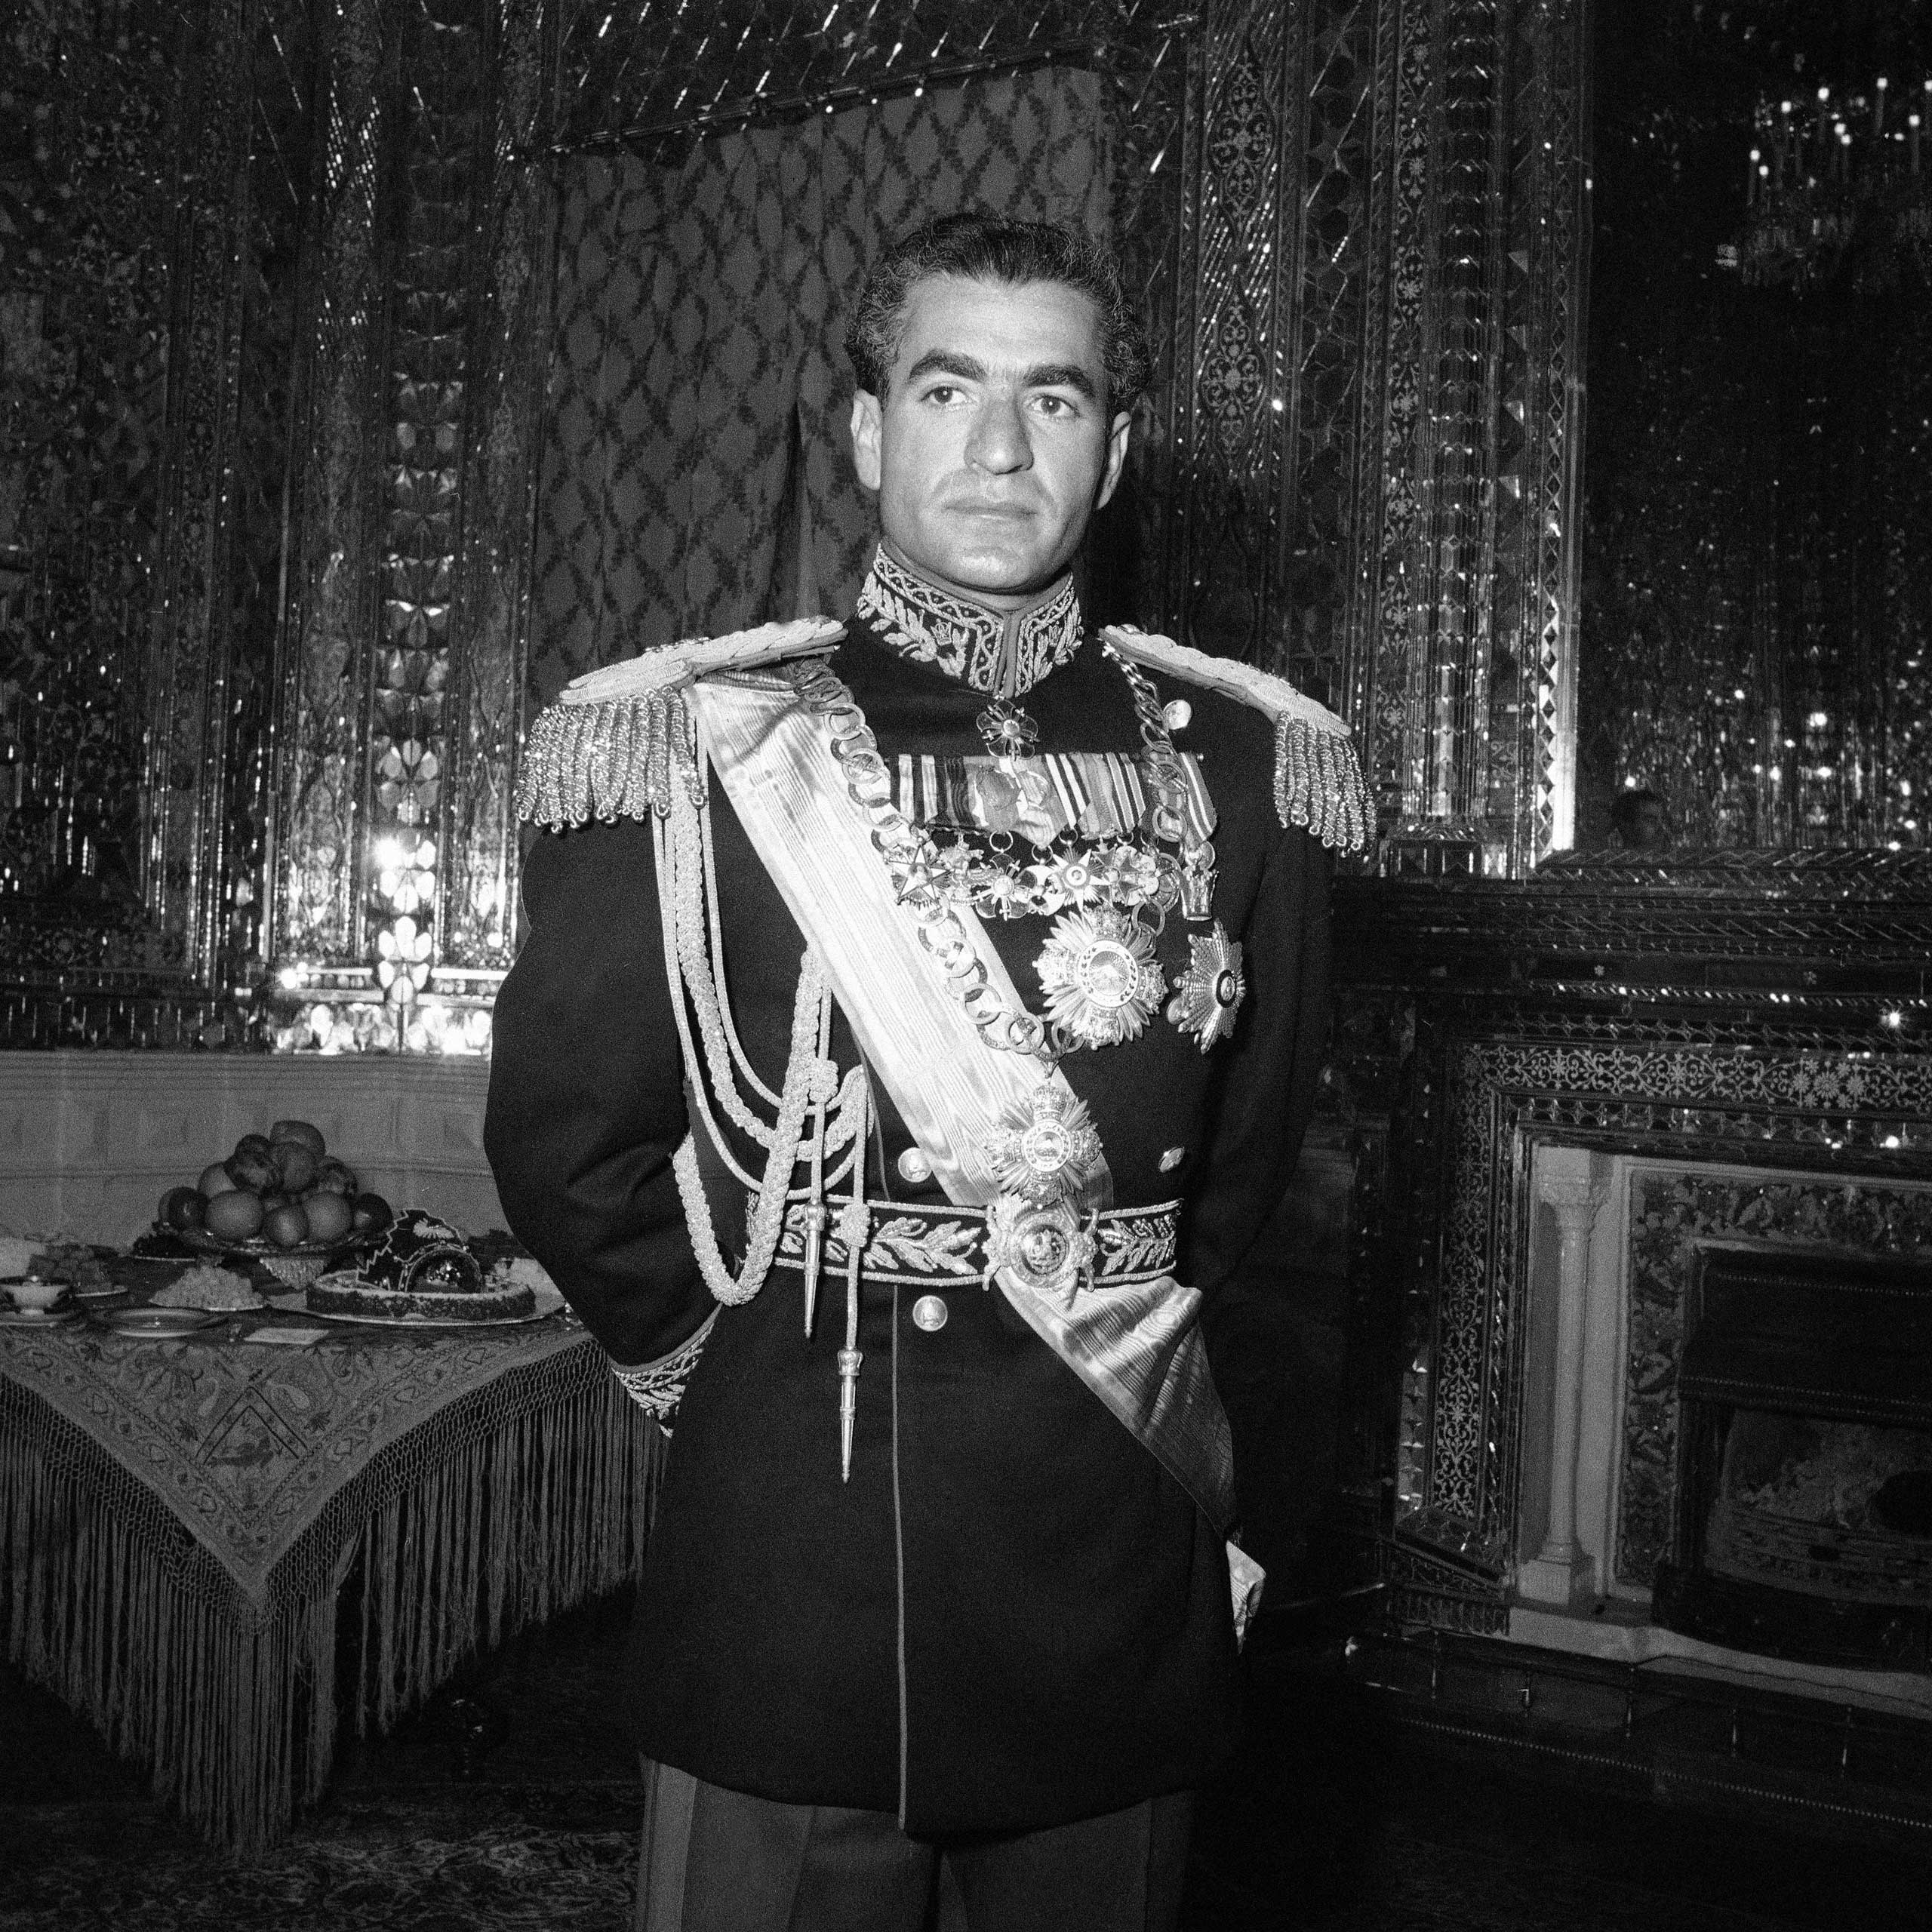 <b>Mohammad Reza Shah Pahlavi</b>, Shah of Iran, addressed Congress on April 12, 1962. He was deposed in 1979. No Iranian leader has addressed a joint session since.